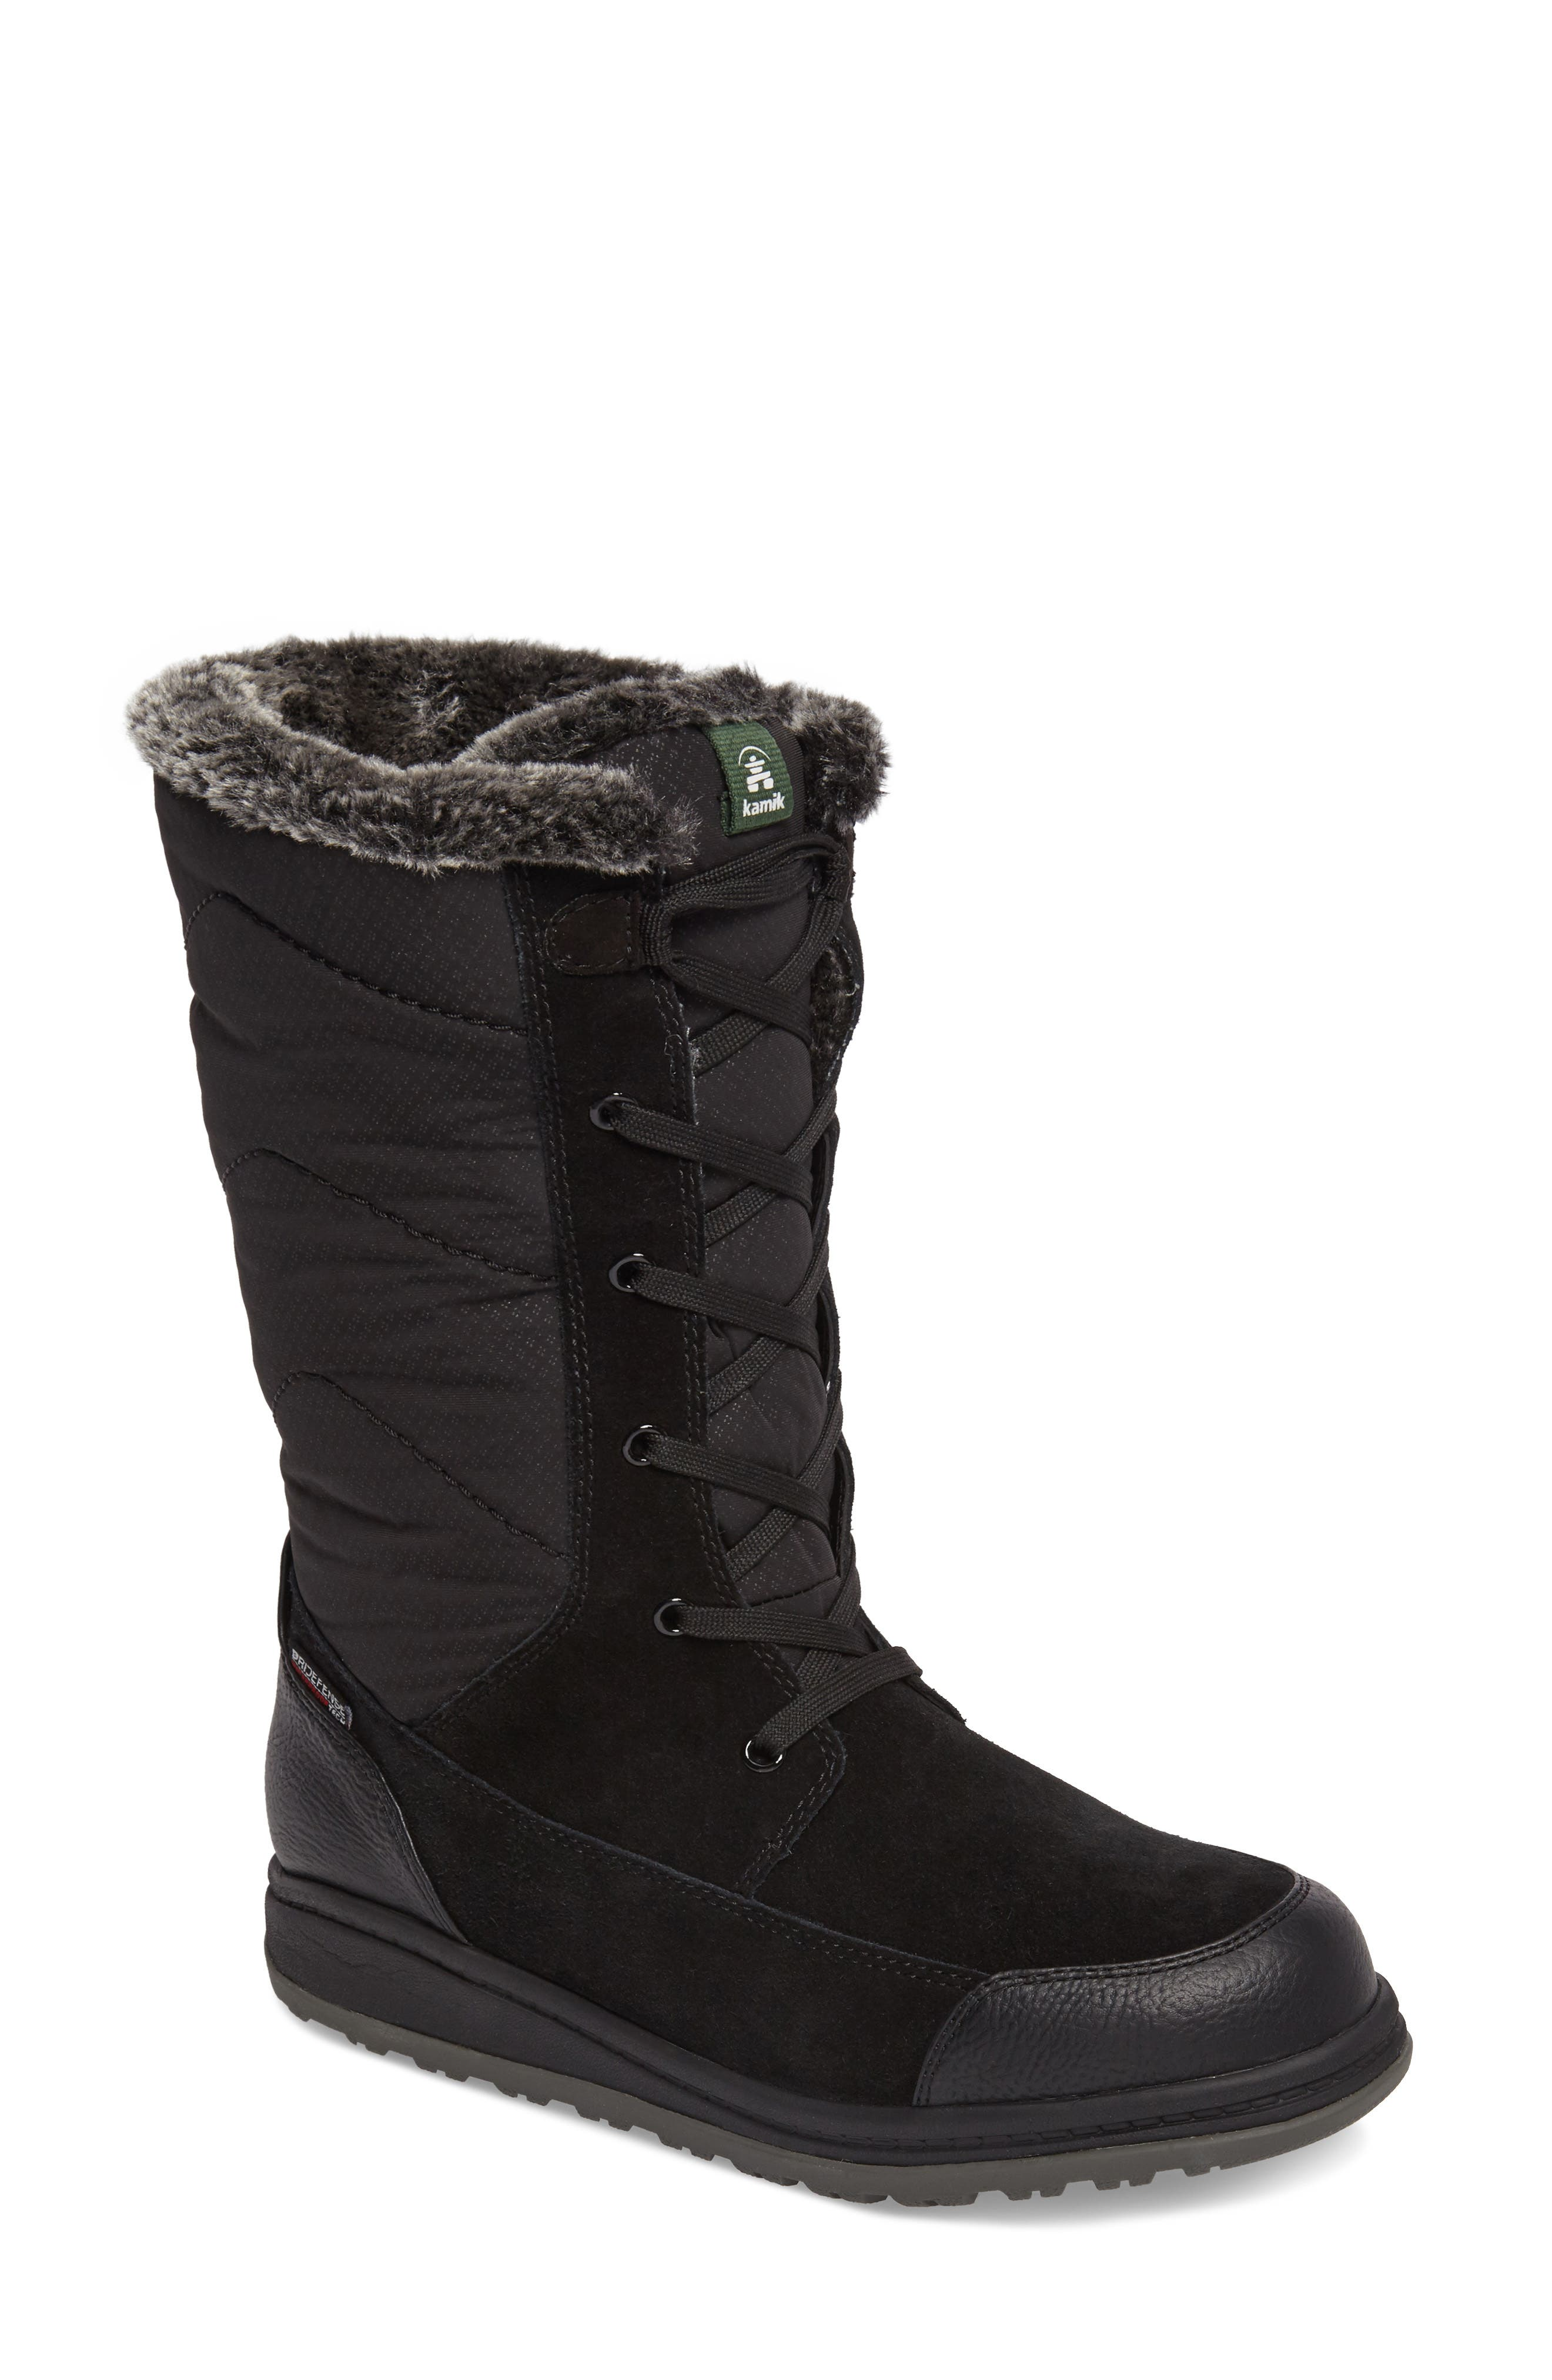 QuincyS Waterproof Boot,                             Main thumbnail 1, color,                             BLACK FABRIC